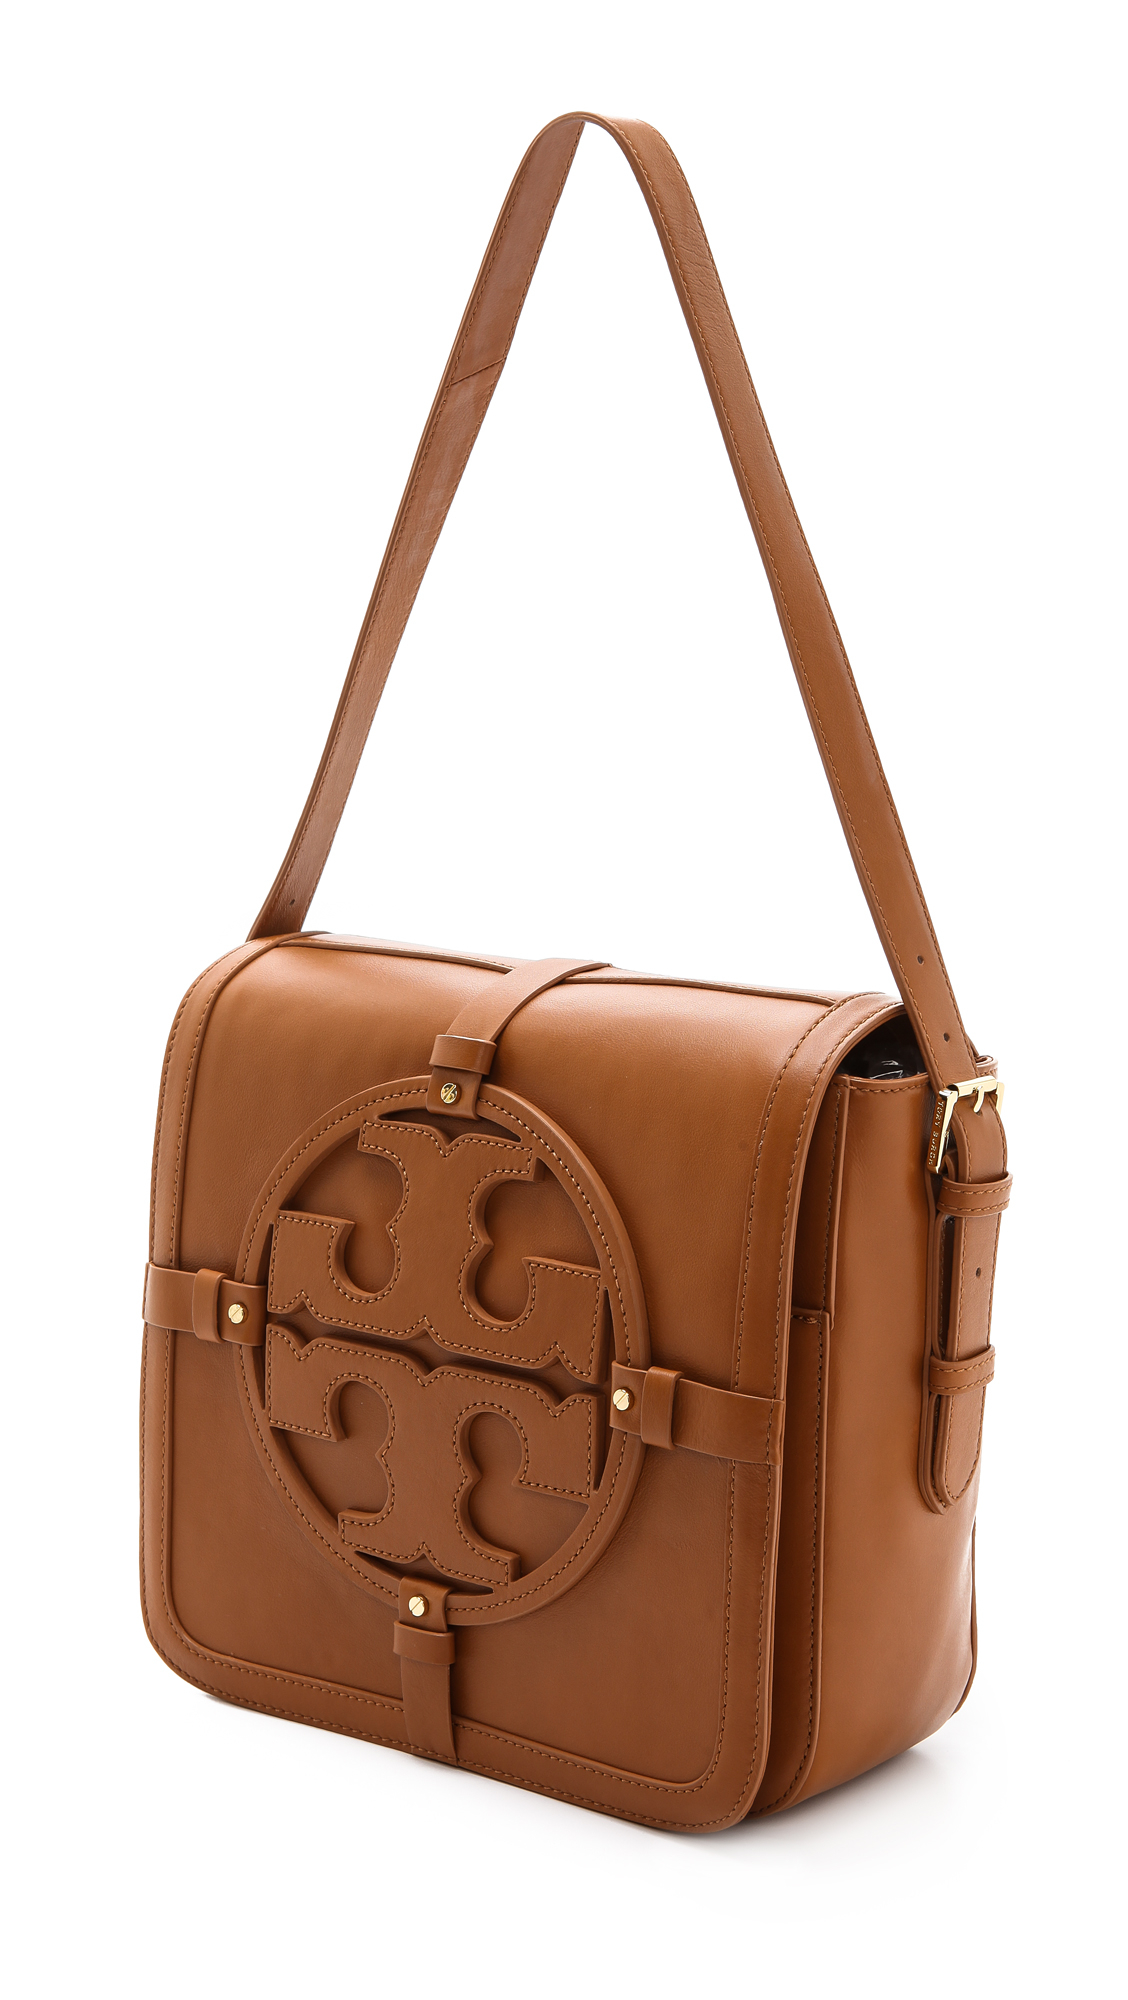 f0005a36eb7 Lyst - Tory Burch Holly Shoulder Bag in Brown